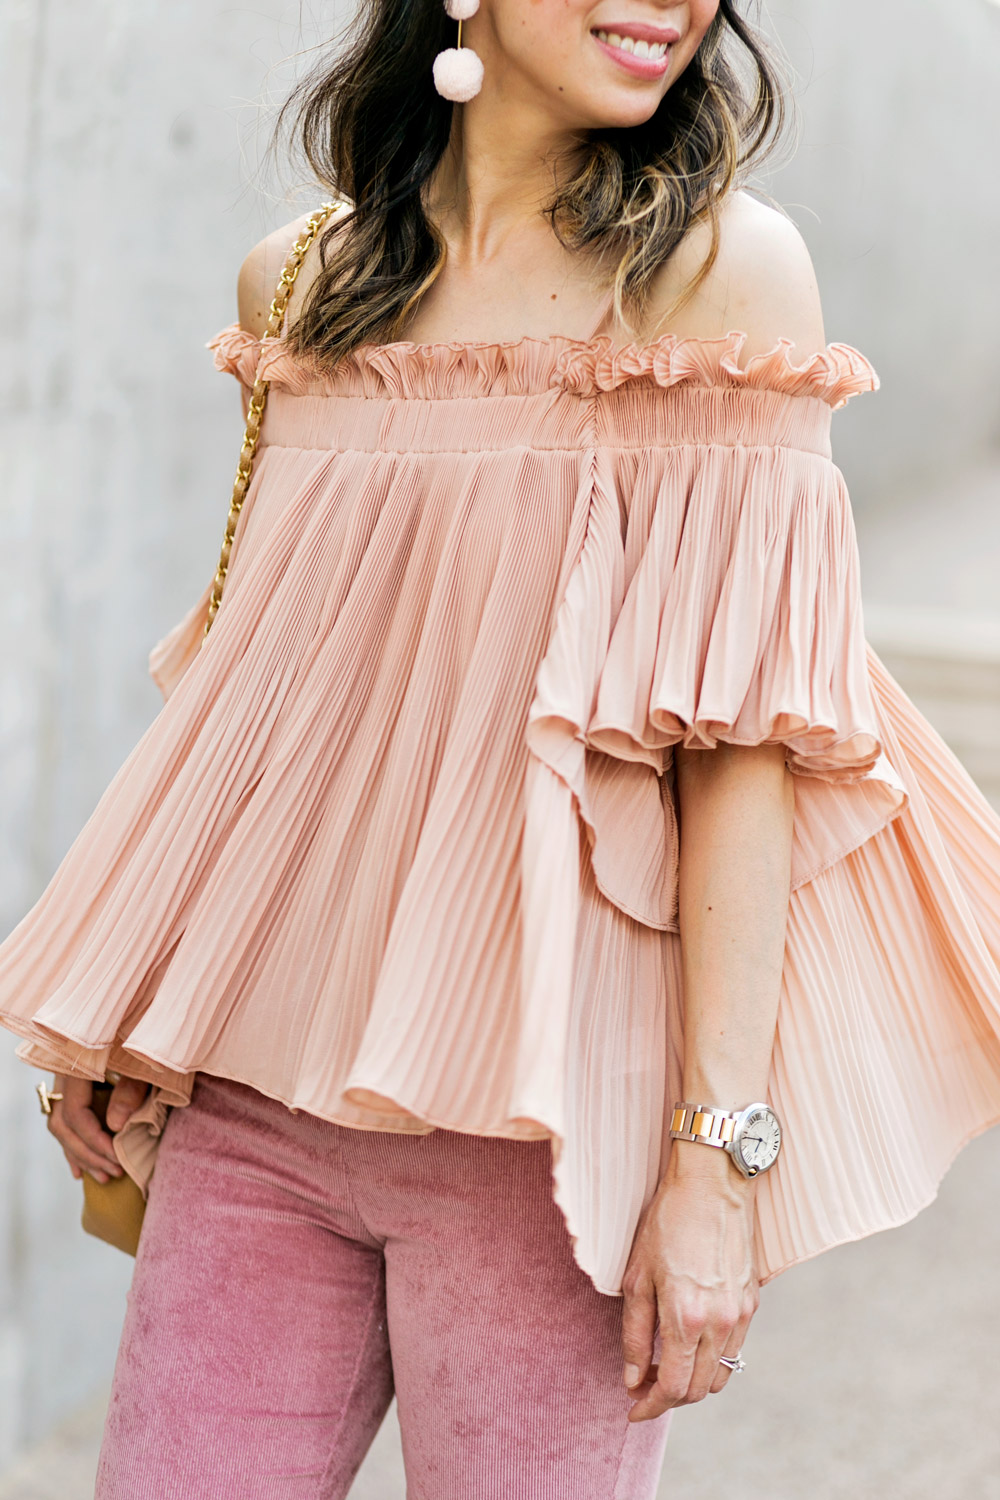 baublebar bahama pink pom pm earrings with endless rose pink pleated off the shoulder top, spring outfit idea